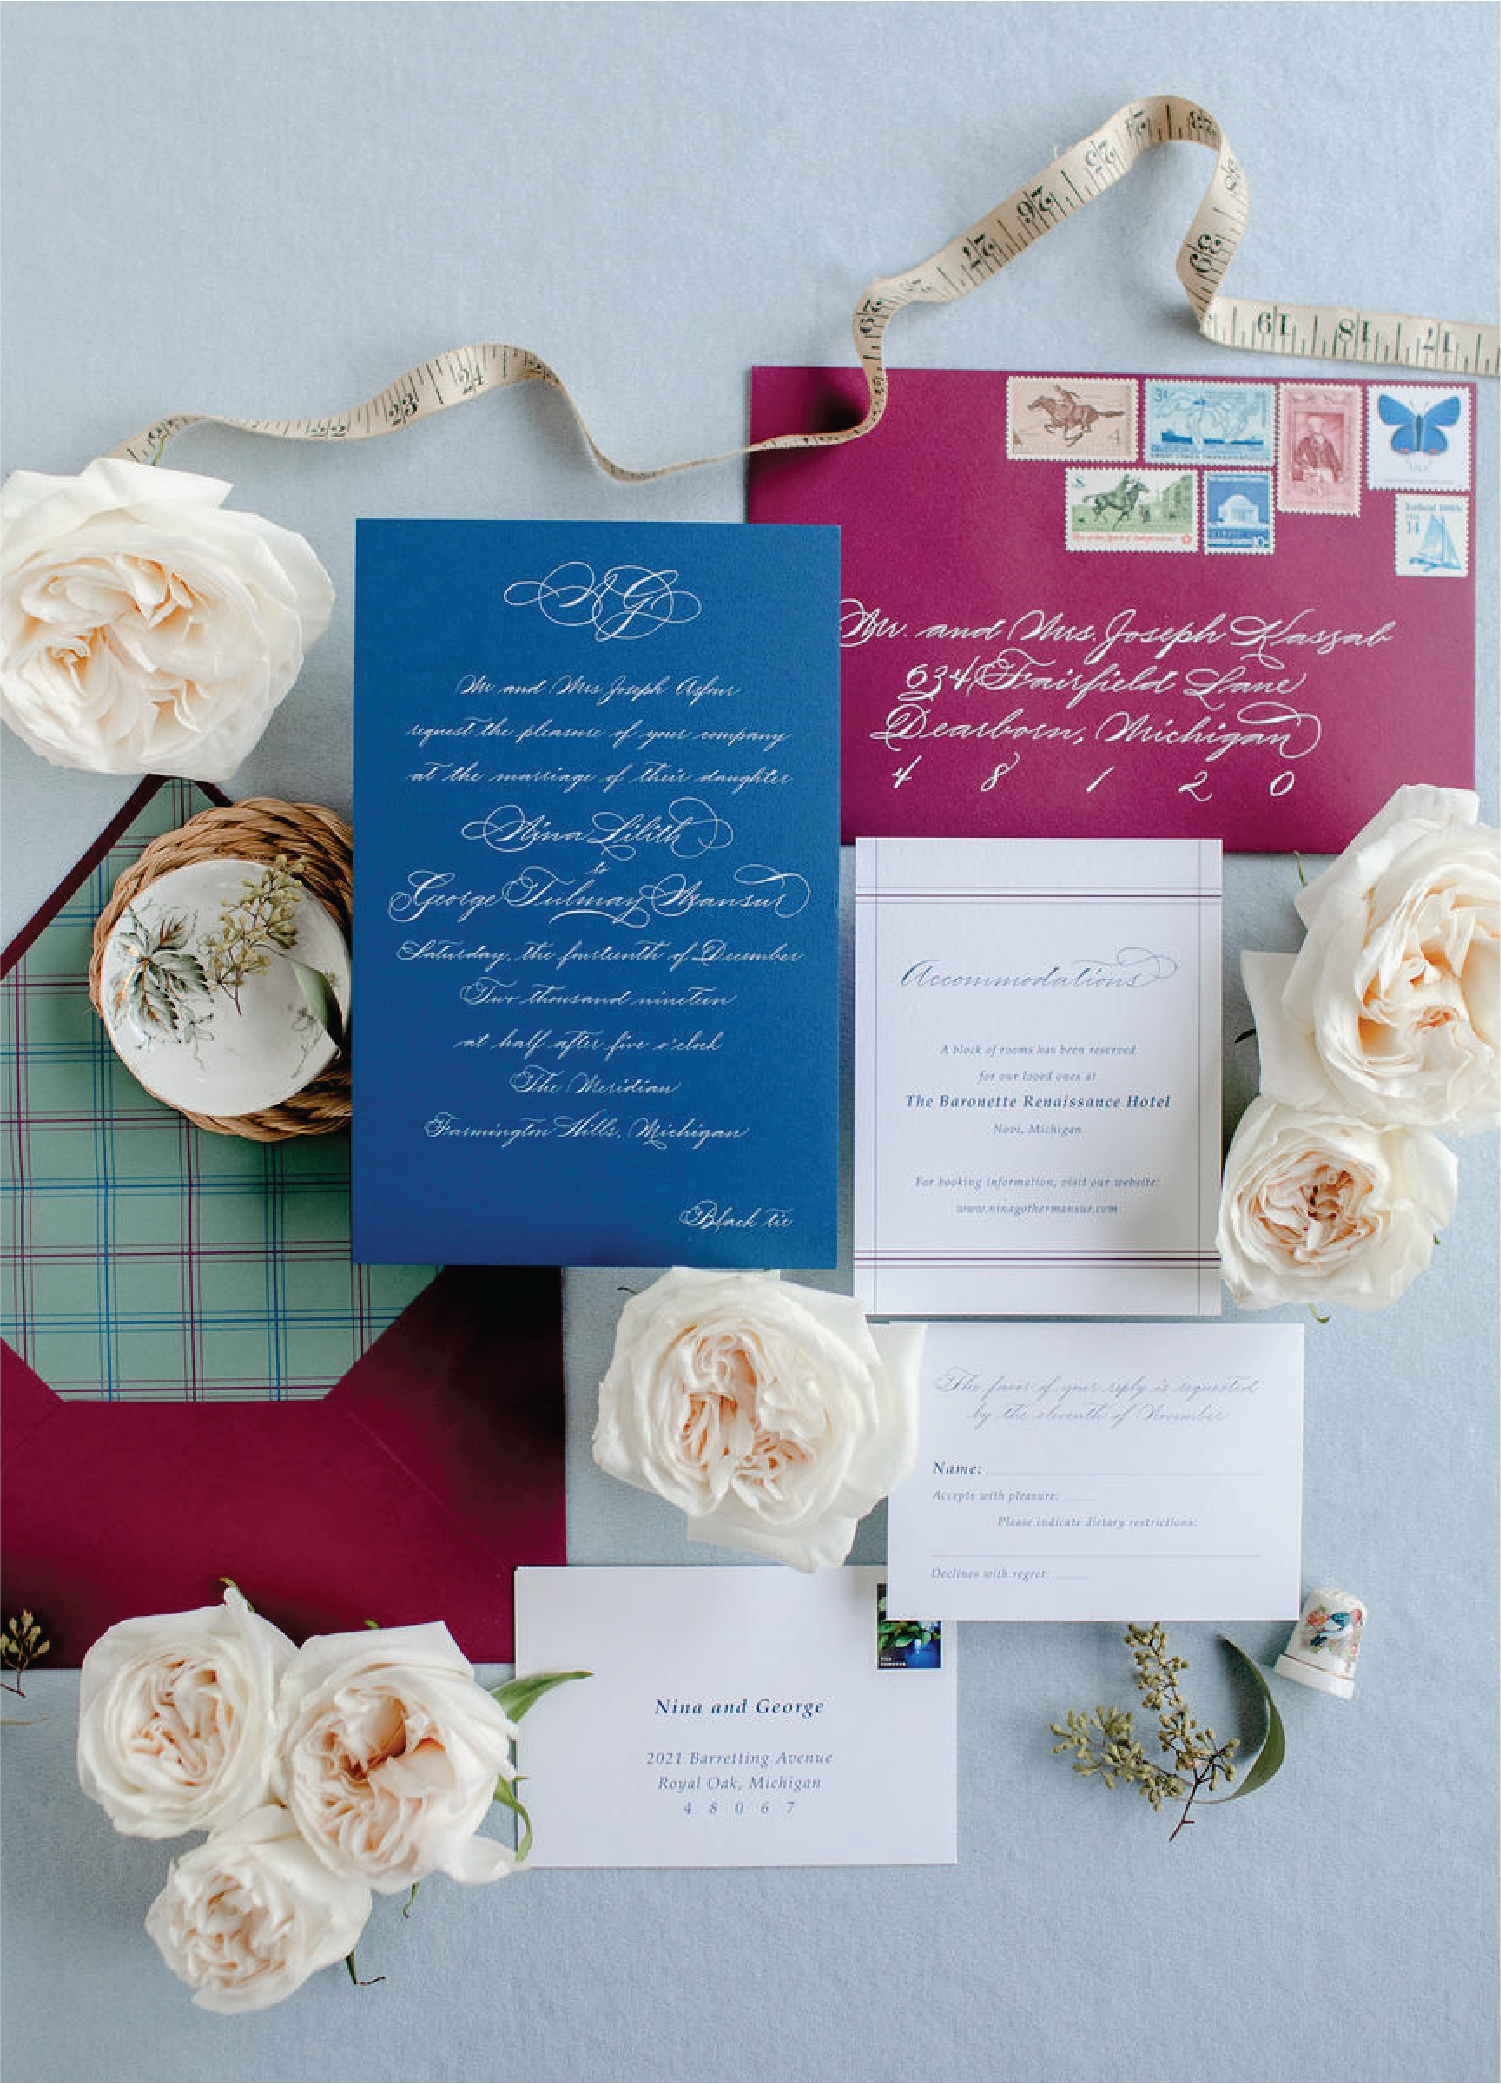 Cobalt blue and burgundy all script wedding invitations with calligraphy by Leah E. Moss Designs